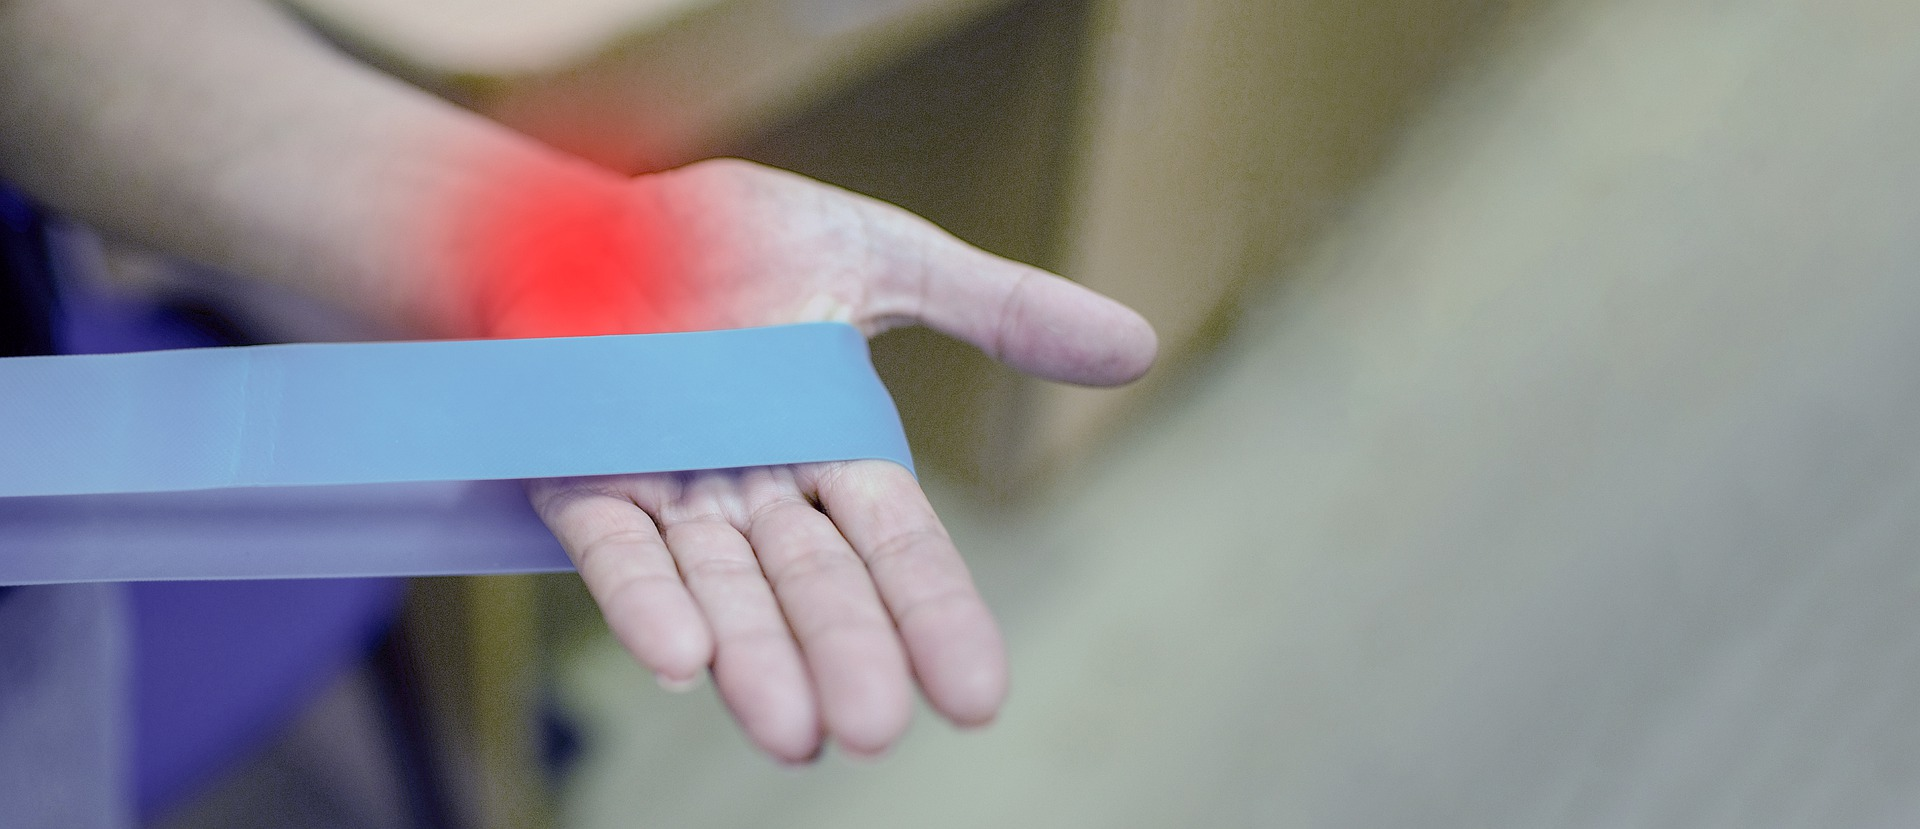 Elasting band around a hand and a red stained area to illustrate inflammation.